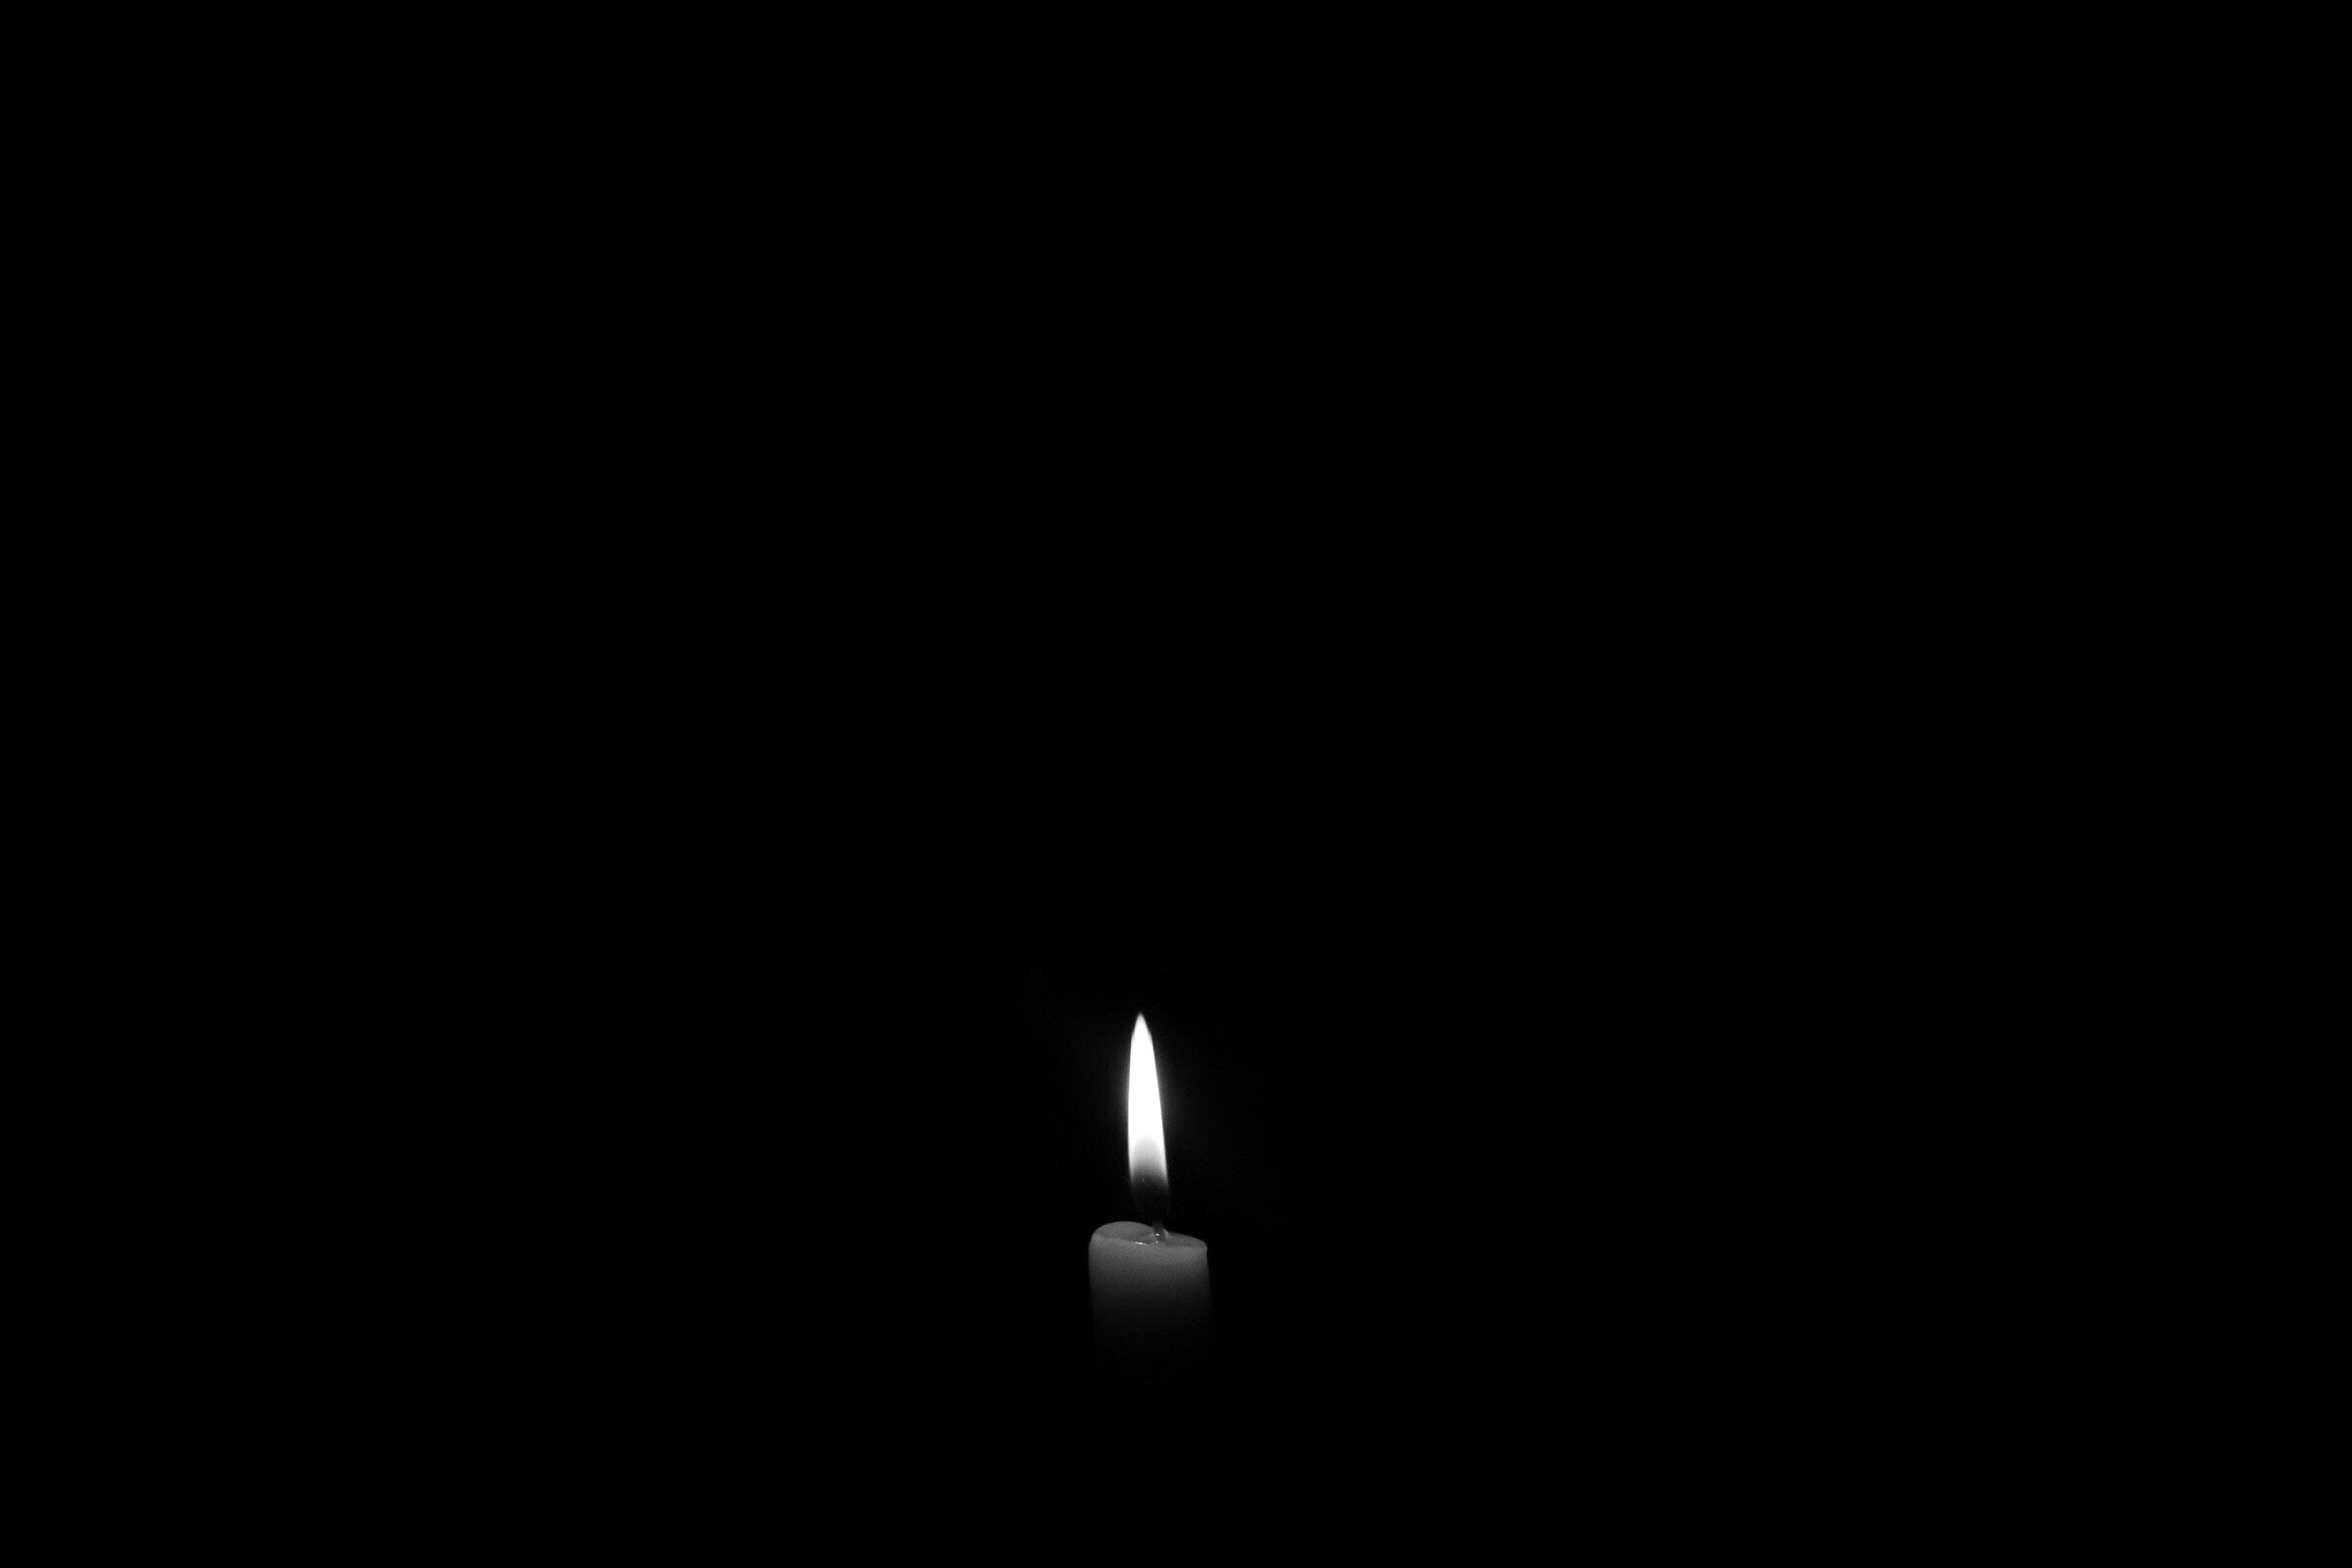 art-black-candle-695644